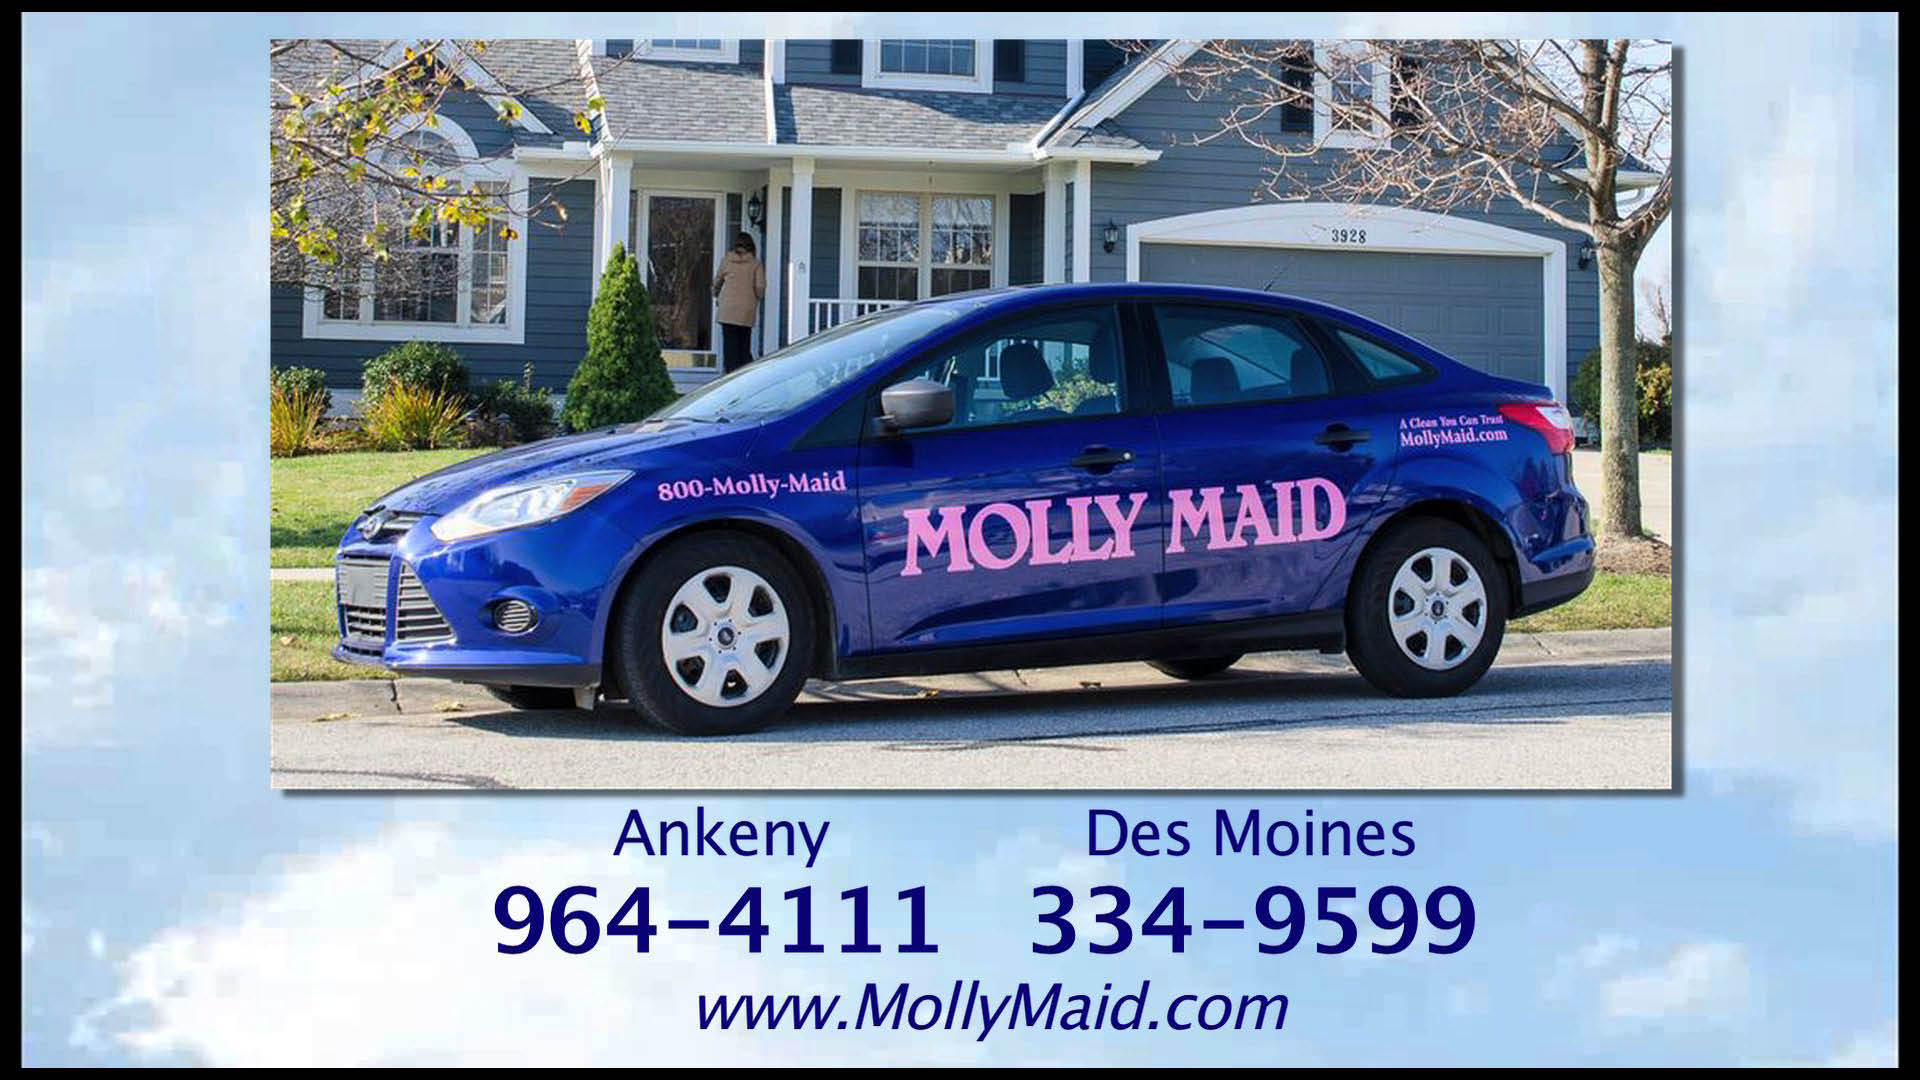 molly maid fredericksburg stafford friendly professional residential cleaning services free estimate experienced highly recommended flexible